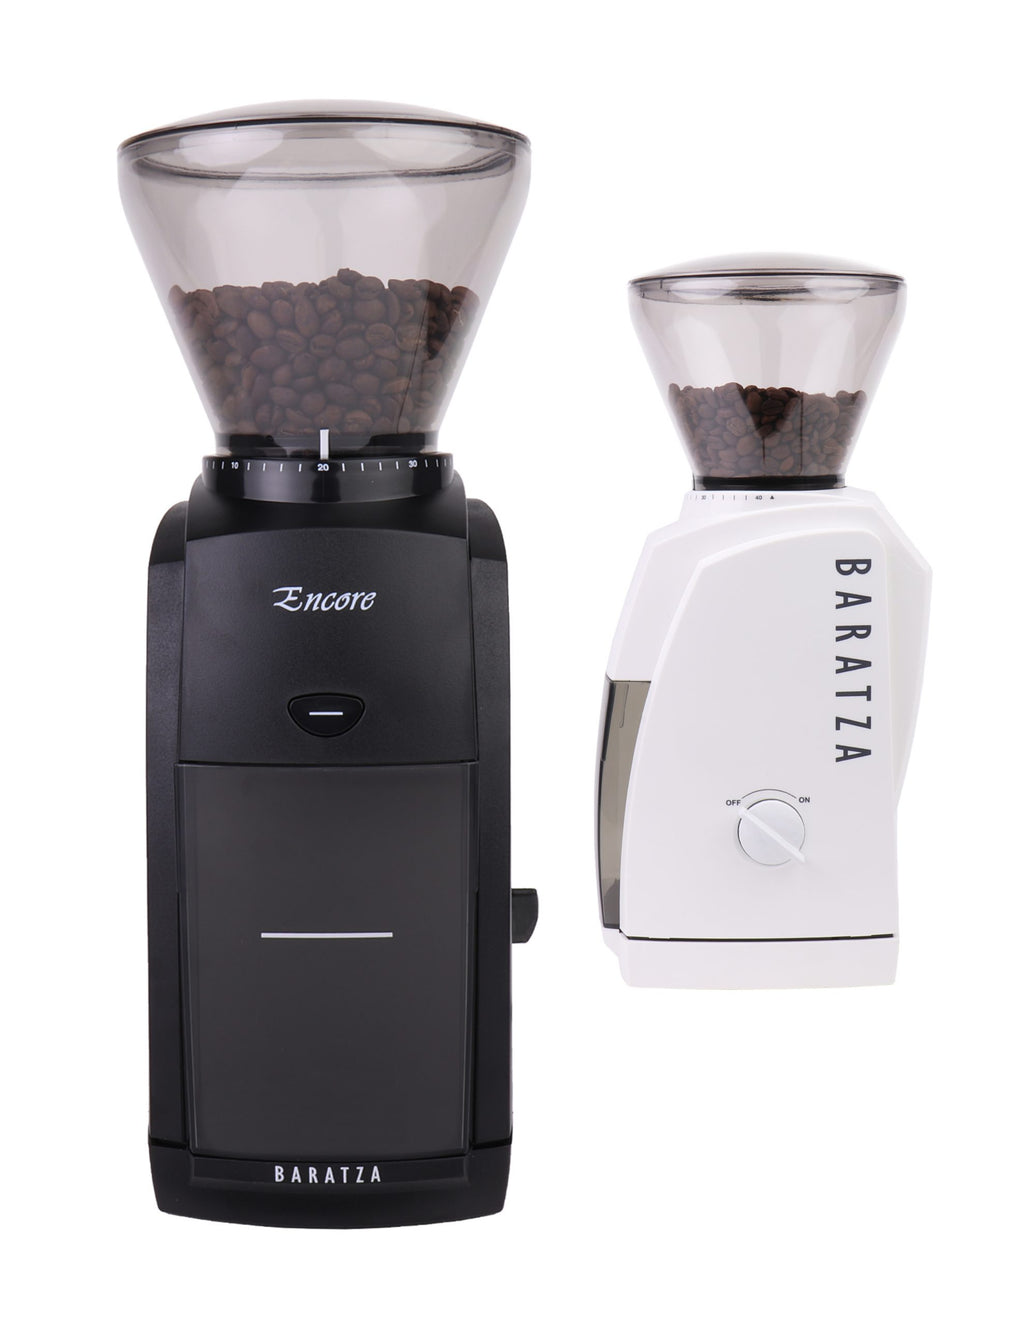 Best Coffee Grinder in black or white for Espresso and Pour Over, and ultimate gift for those looking to update their coffee resume.